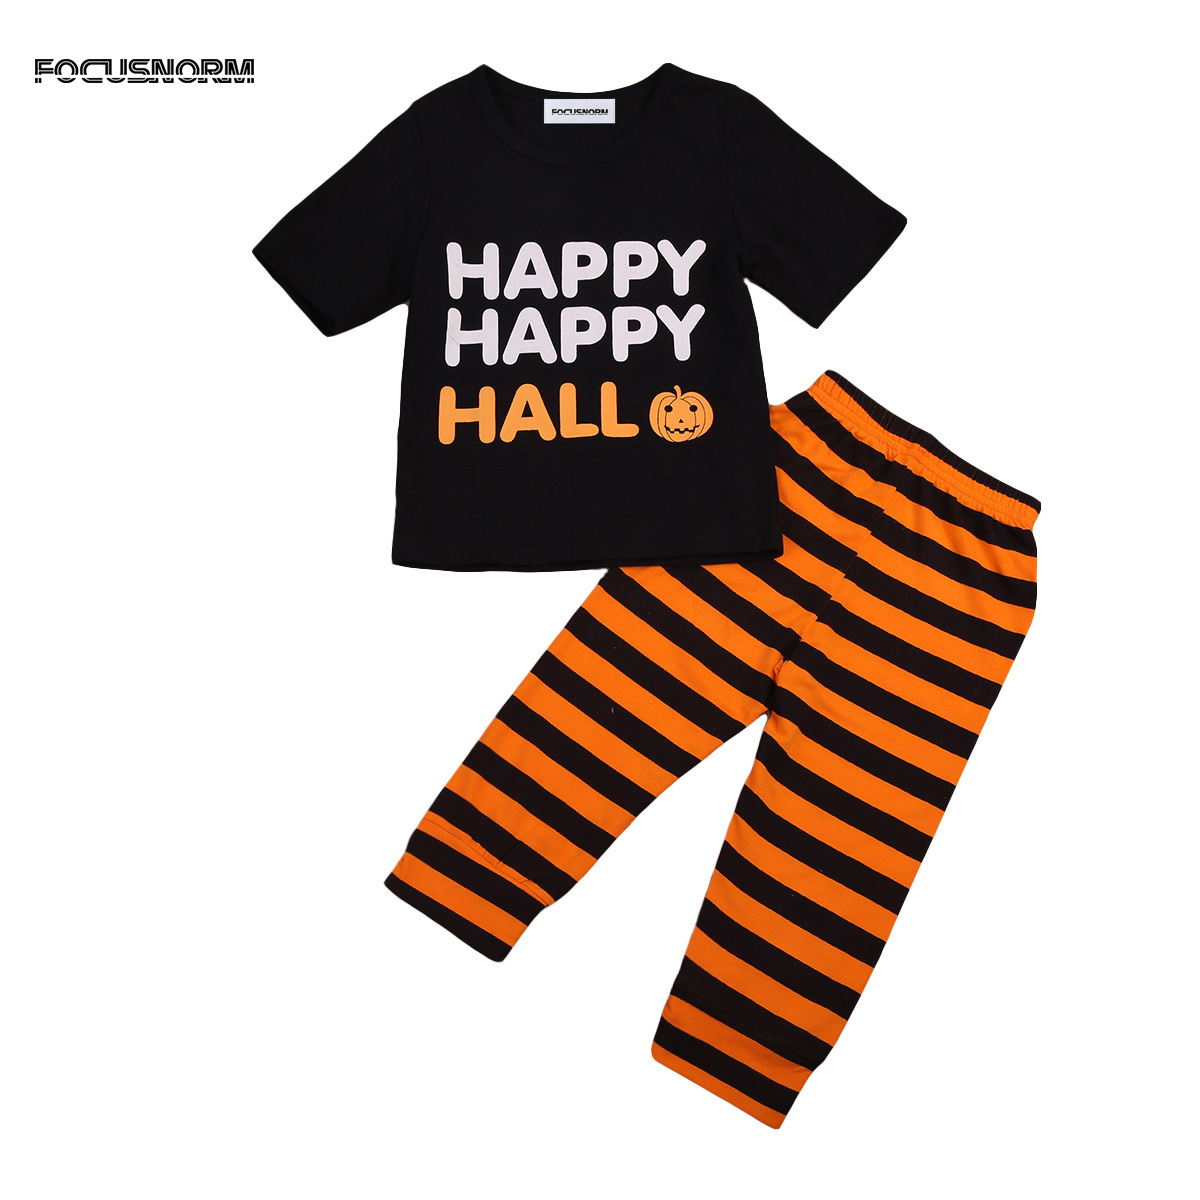 Cute Toddler Kids Baby Boy Girl Clothes Short Sleeve T-shirt+Orange Stripes Pants Leggings Halloween Outfits Set